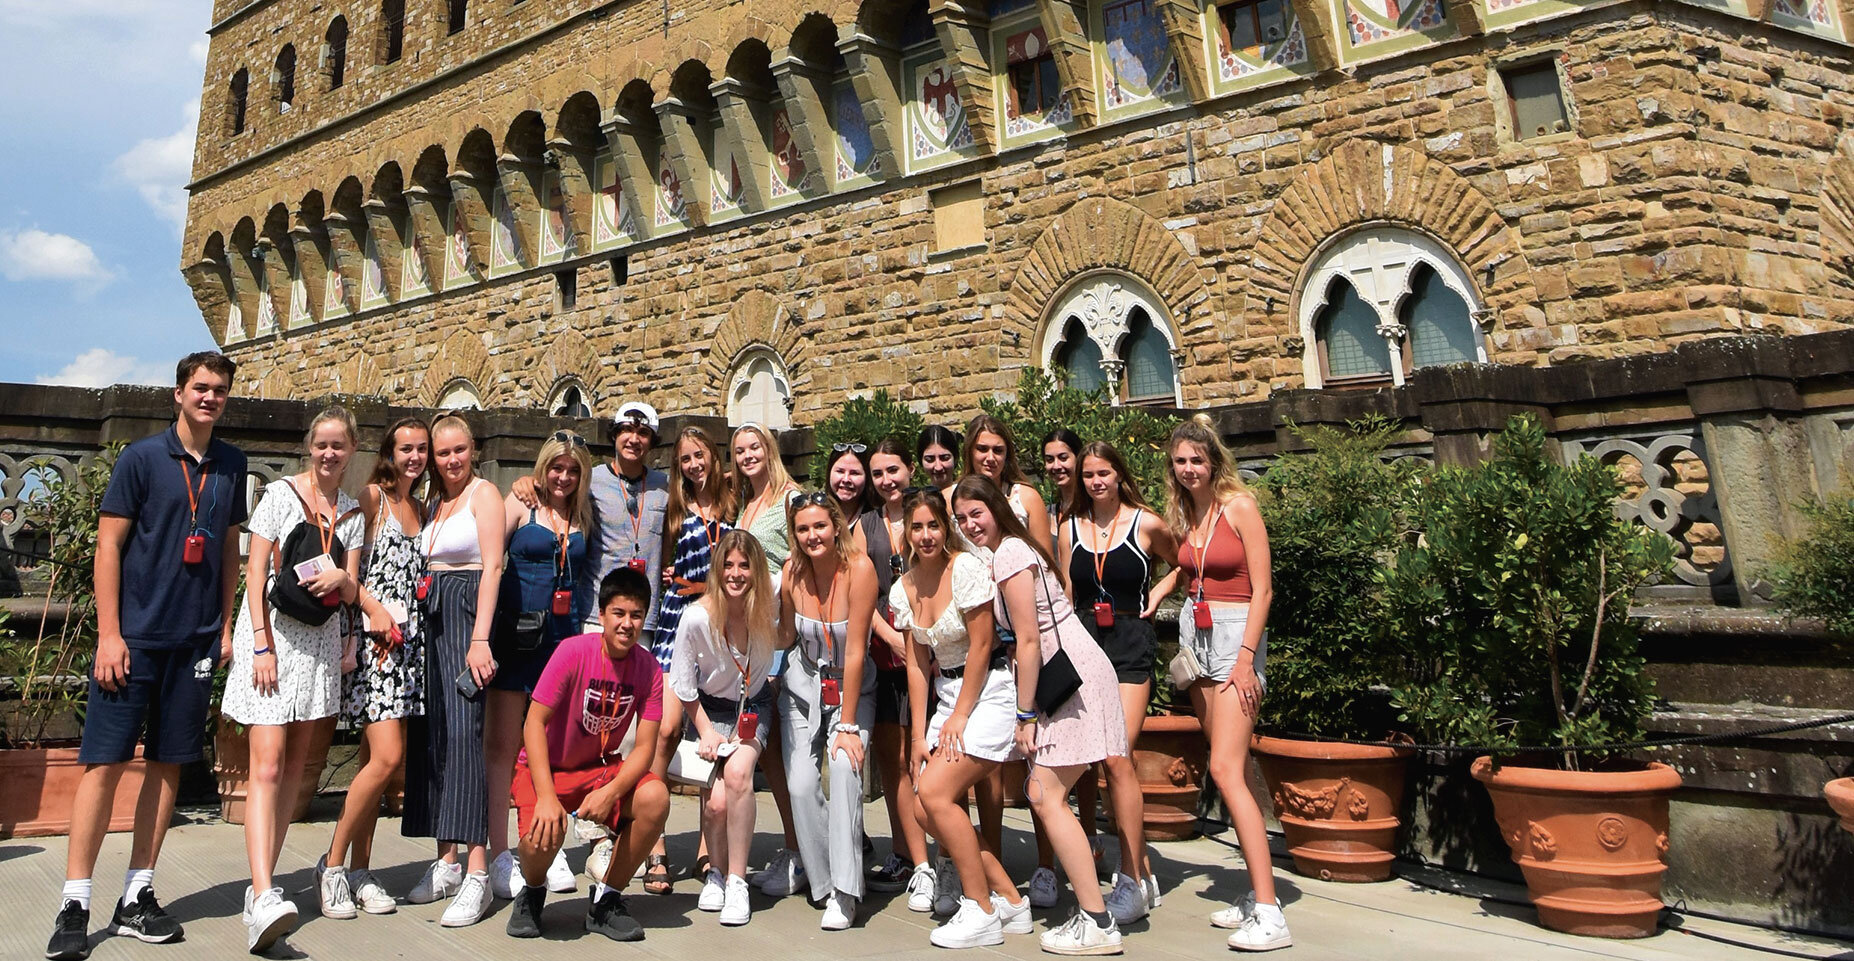 BLYTH ACADEMY INTERNATIONAL SUMMERS - Course information● Dates July and August● Course length 2 – 3 Weeks● Class size 11 – 20● Staff to student ratio 1 : 7● Age 13 – 19● Levels All● Hours of English per week 30● Week 7 days● Accommodation Residential